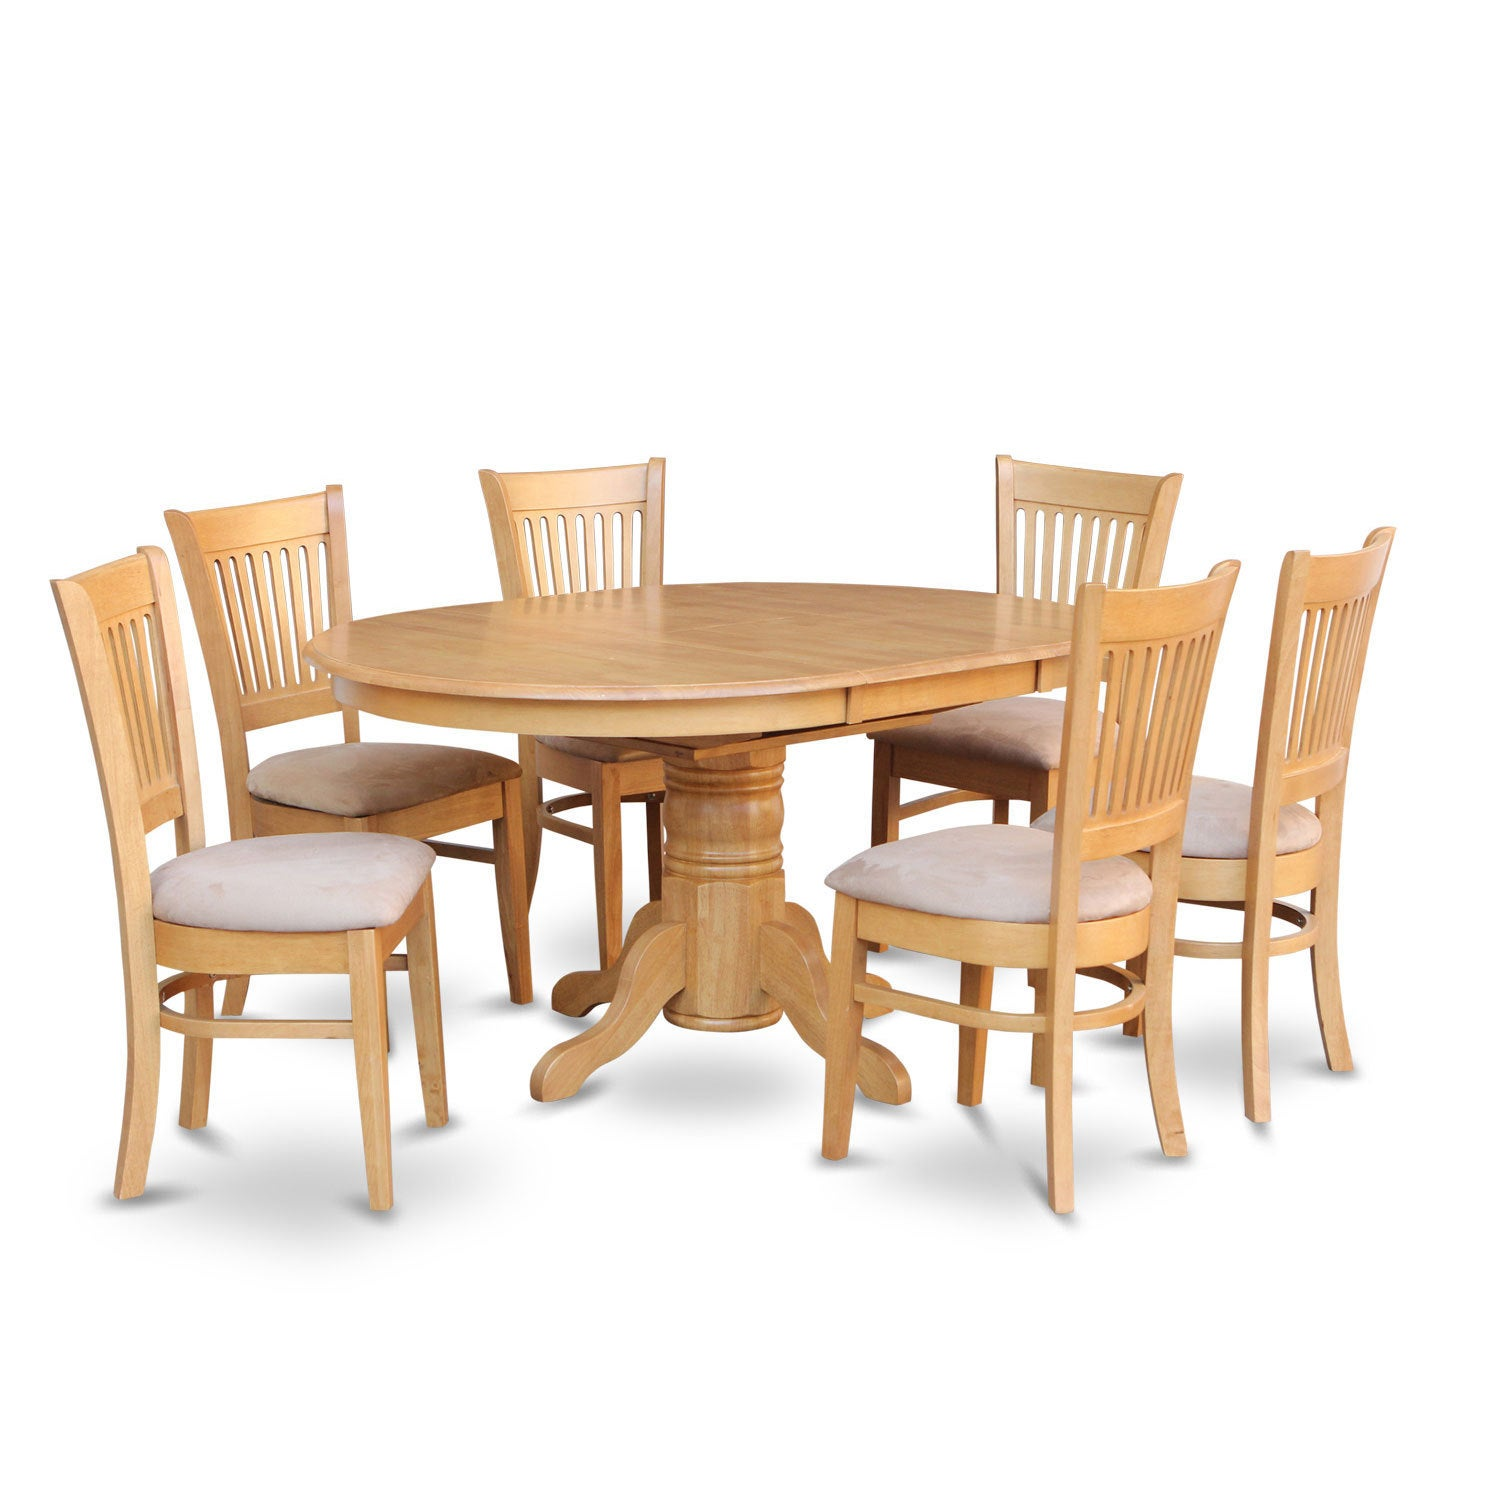 5-piece Dining Table and 4 Chairs (Microfiber), Brown, Si...